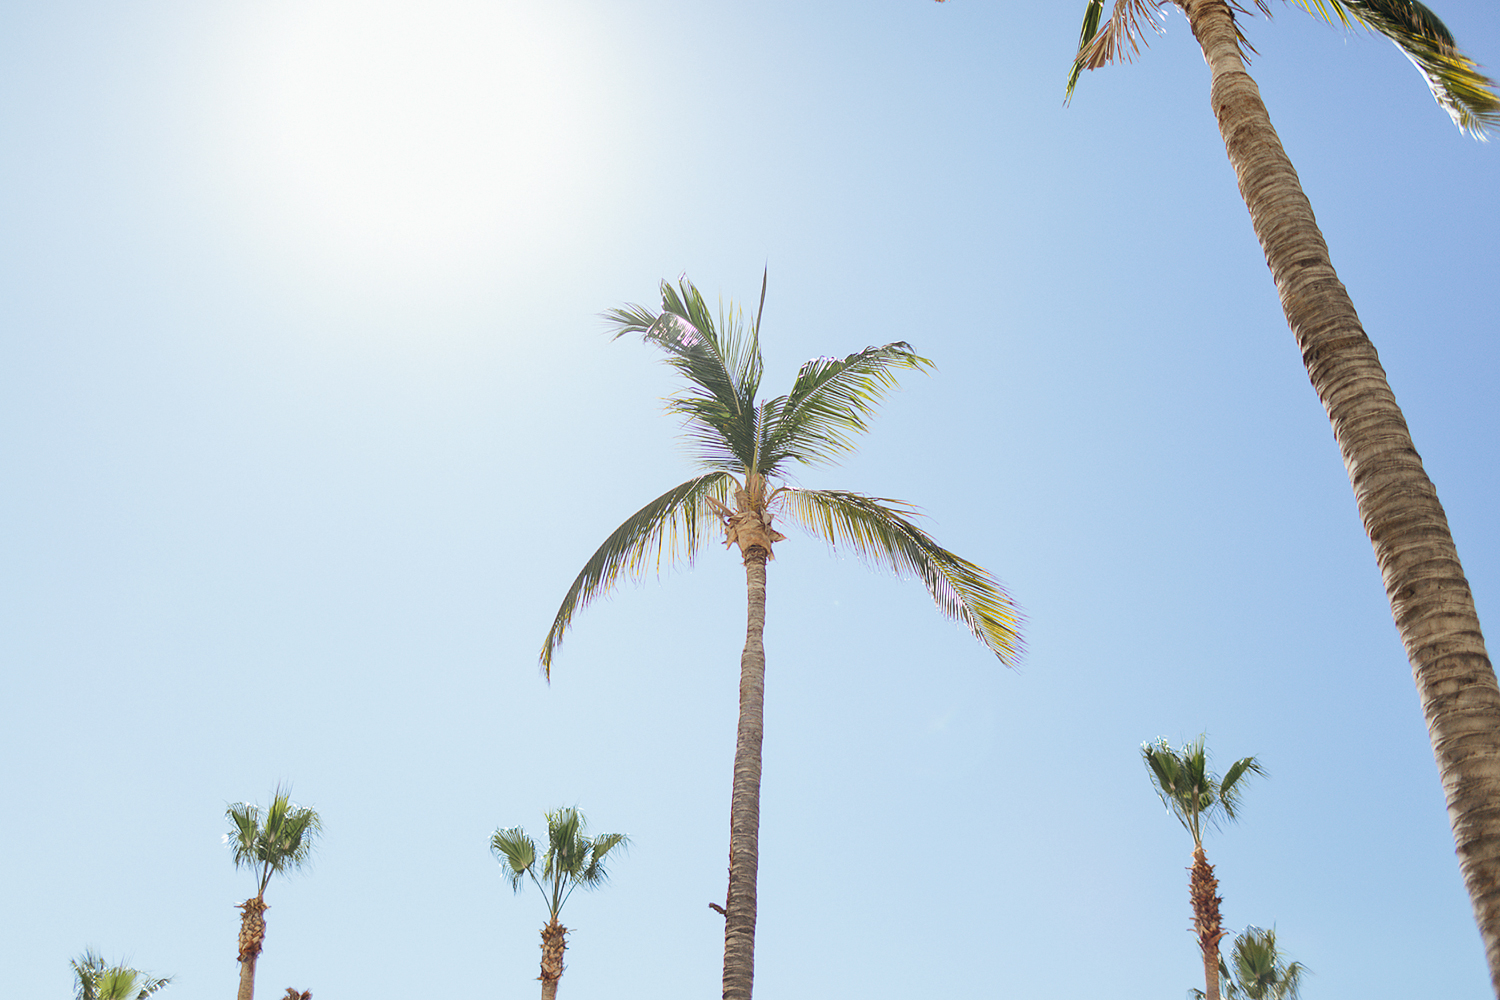 cabo-san-lucas-wedding-travelling-destination-wedding-photographer-based-out-of-toronto-best-wedding-photographers-hipster-trendy-documentary-style-mexico-wedding-details-palm-tress.jpg